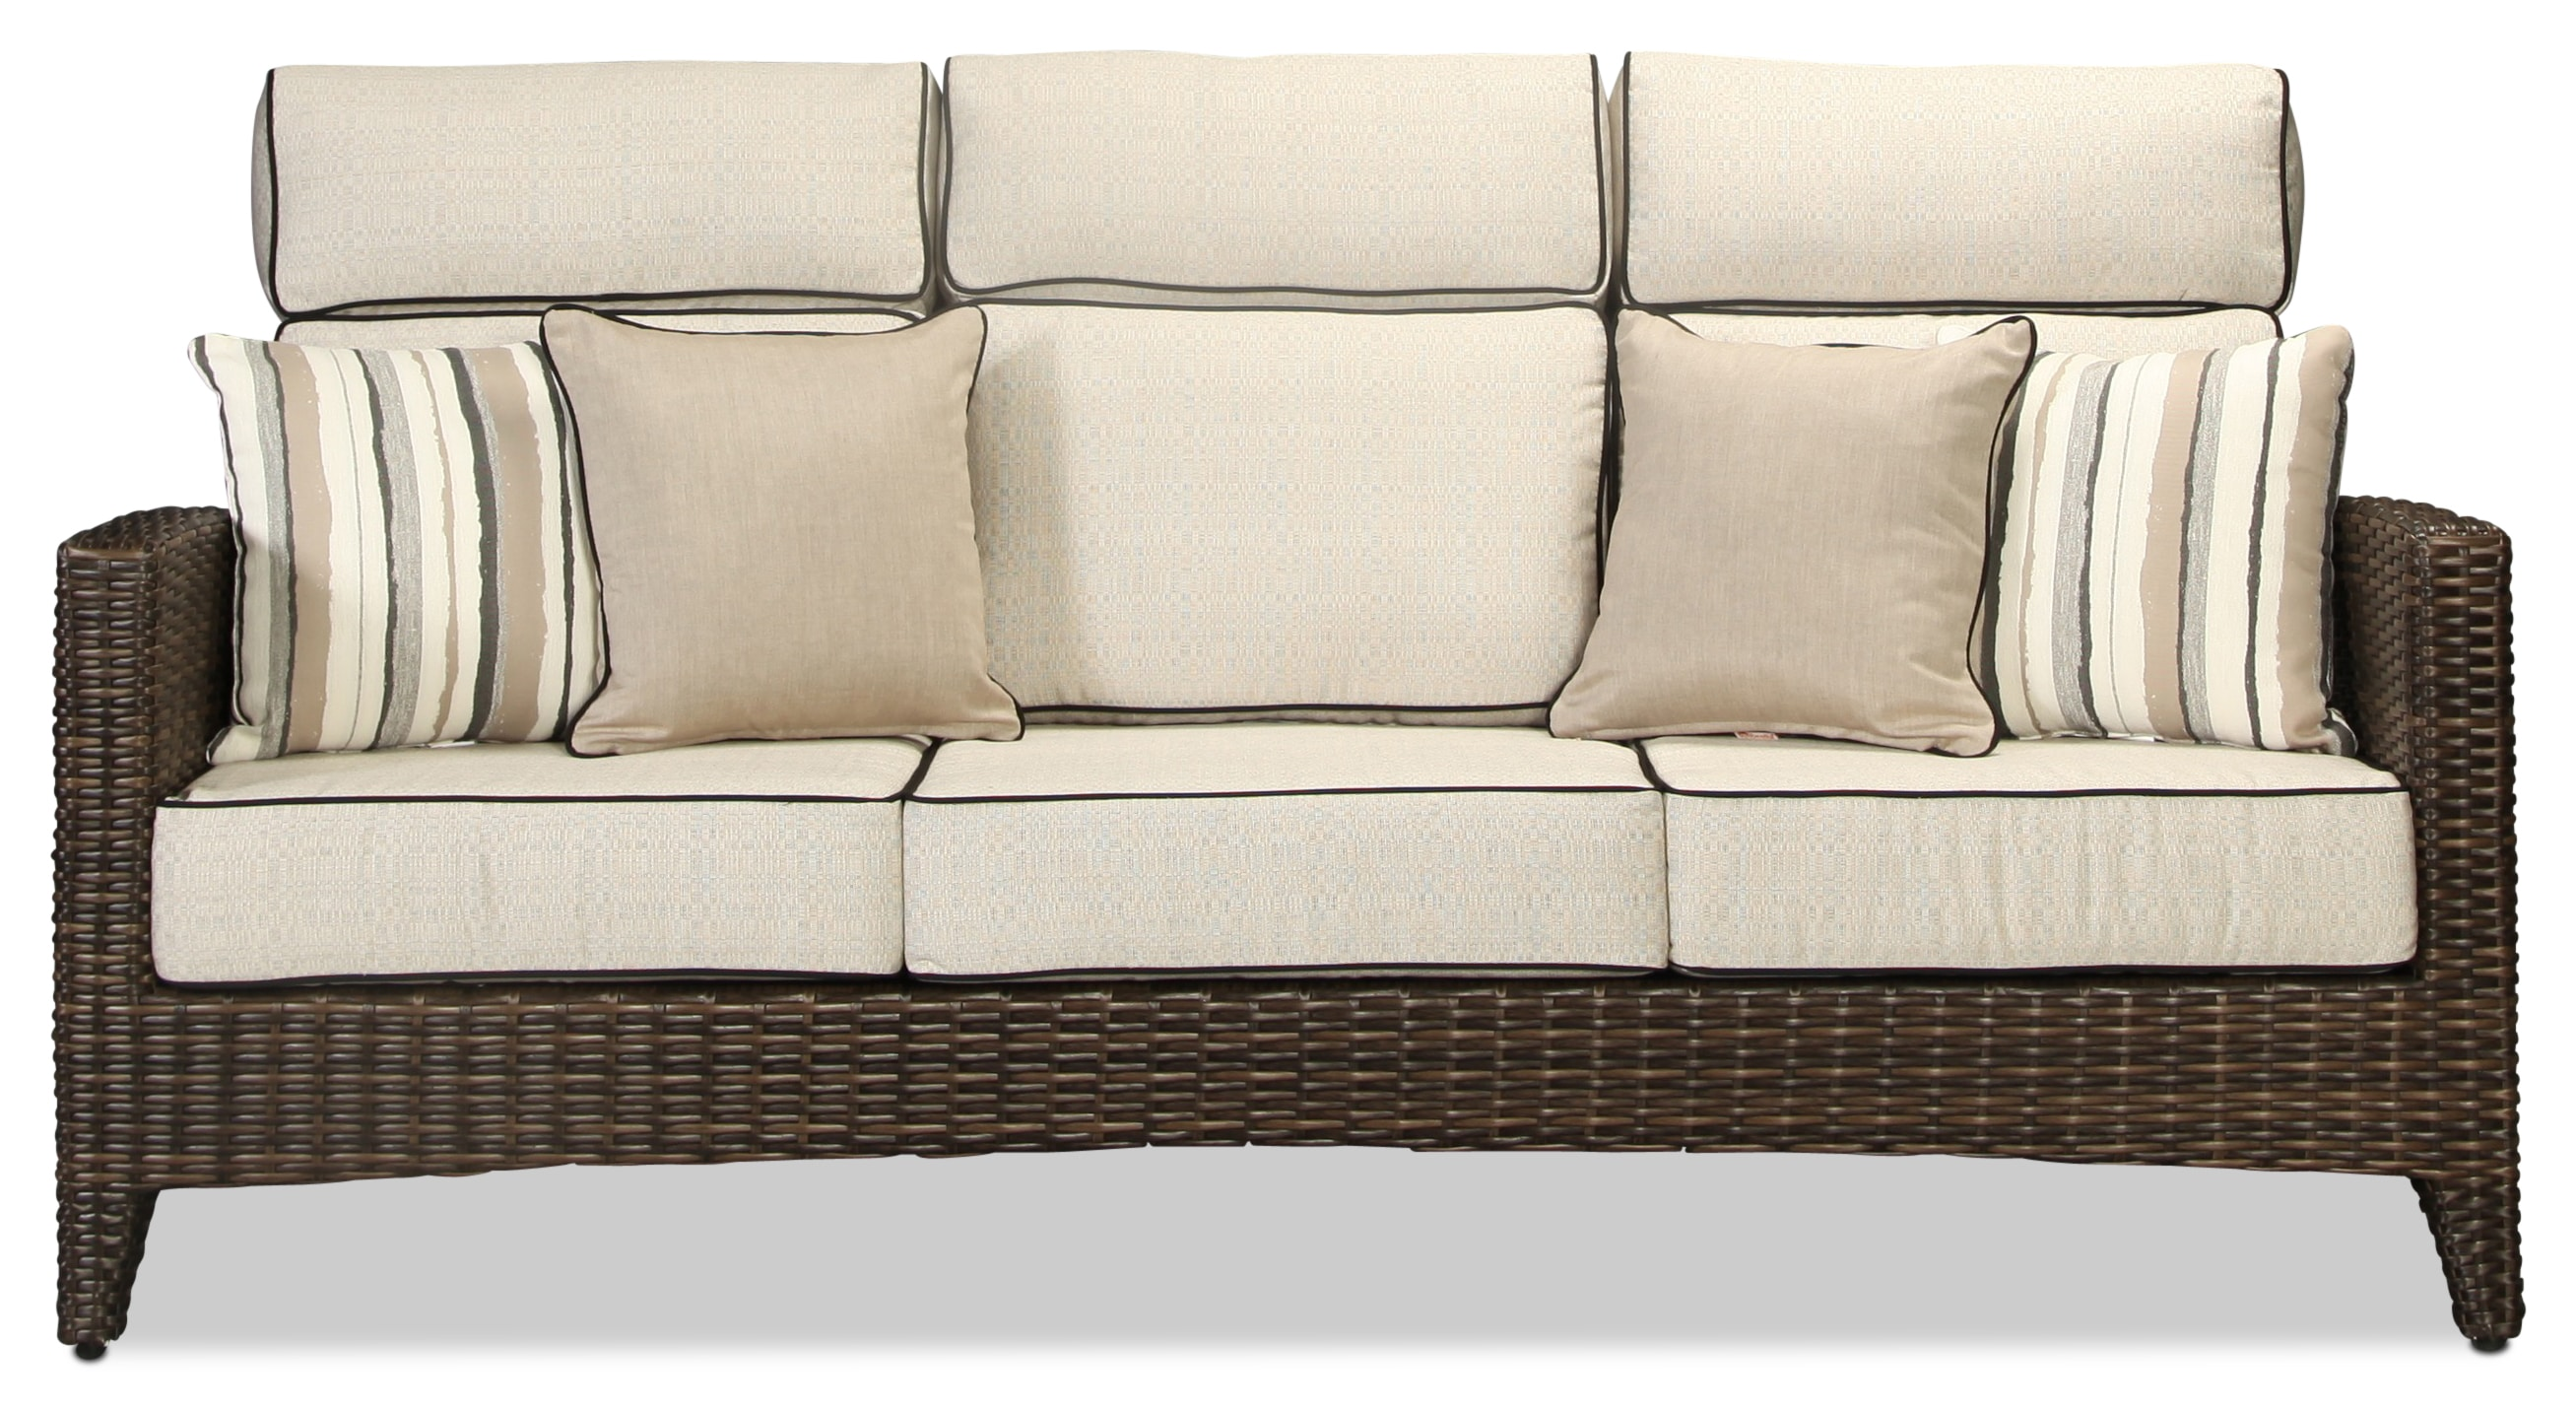 Siesta Key Sofa